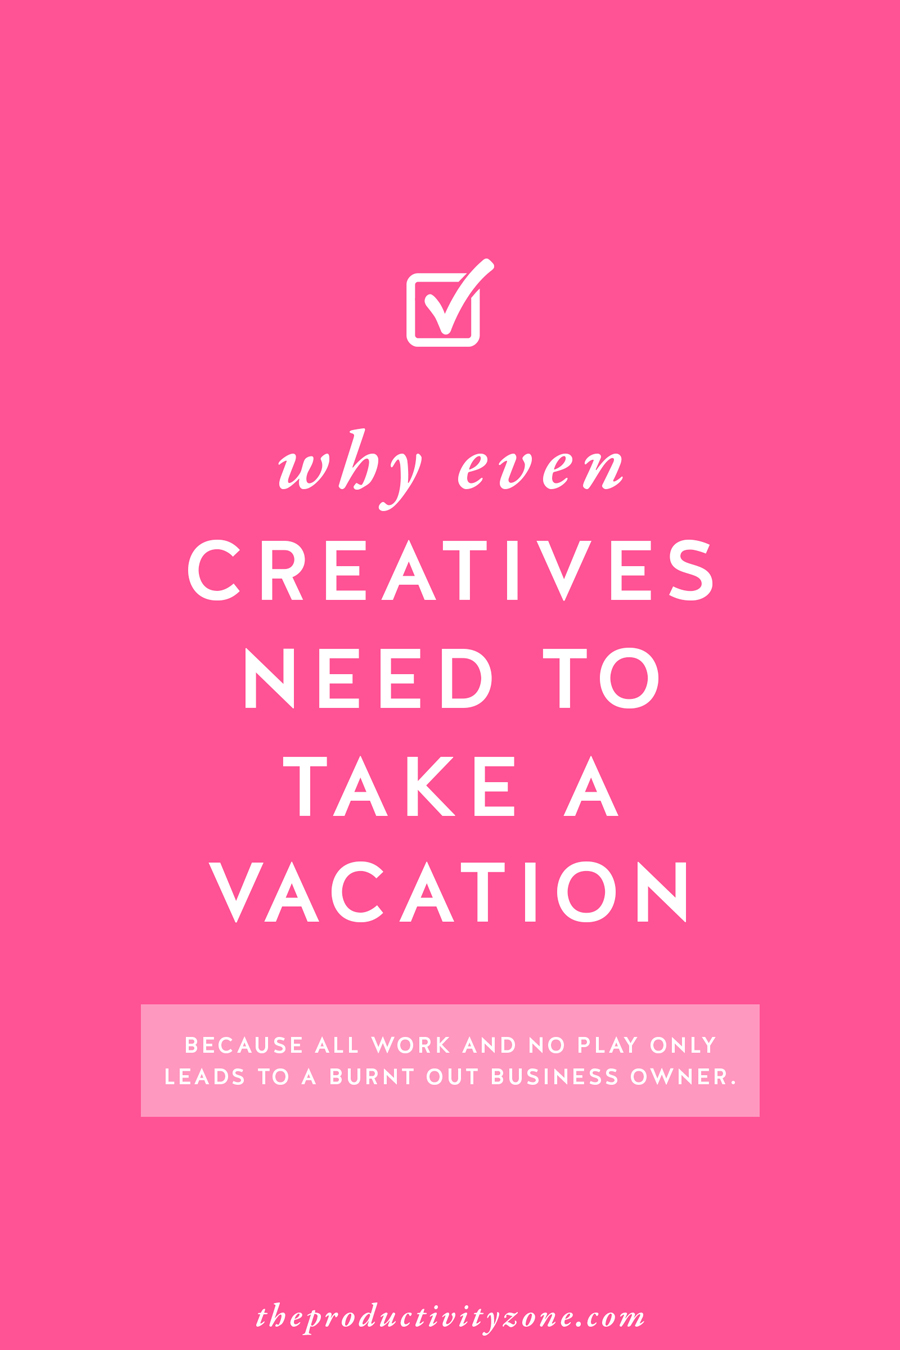 Yes, it's true. Even creatives need to take a vacation. (That means you, boo!!) Check out all the reasons why taking a vacation is not only good for you but good for your business, too, on The Productivity Zone!!